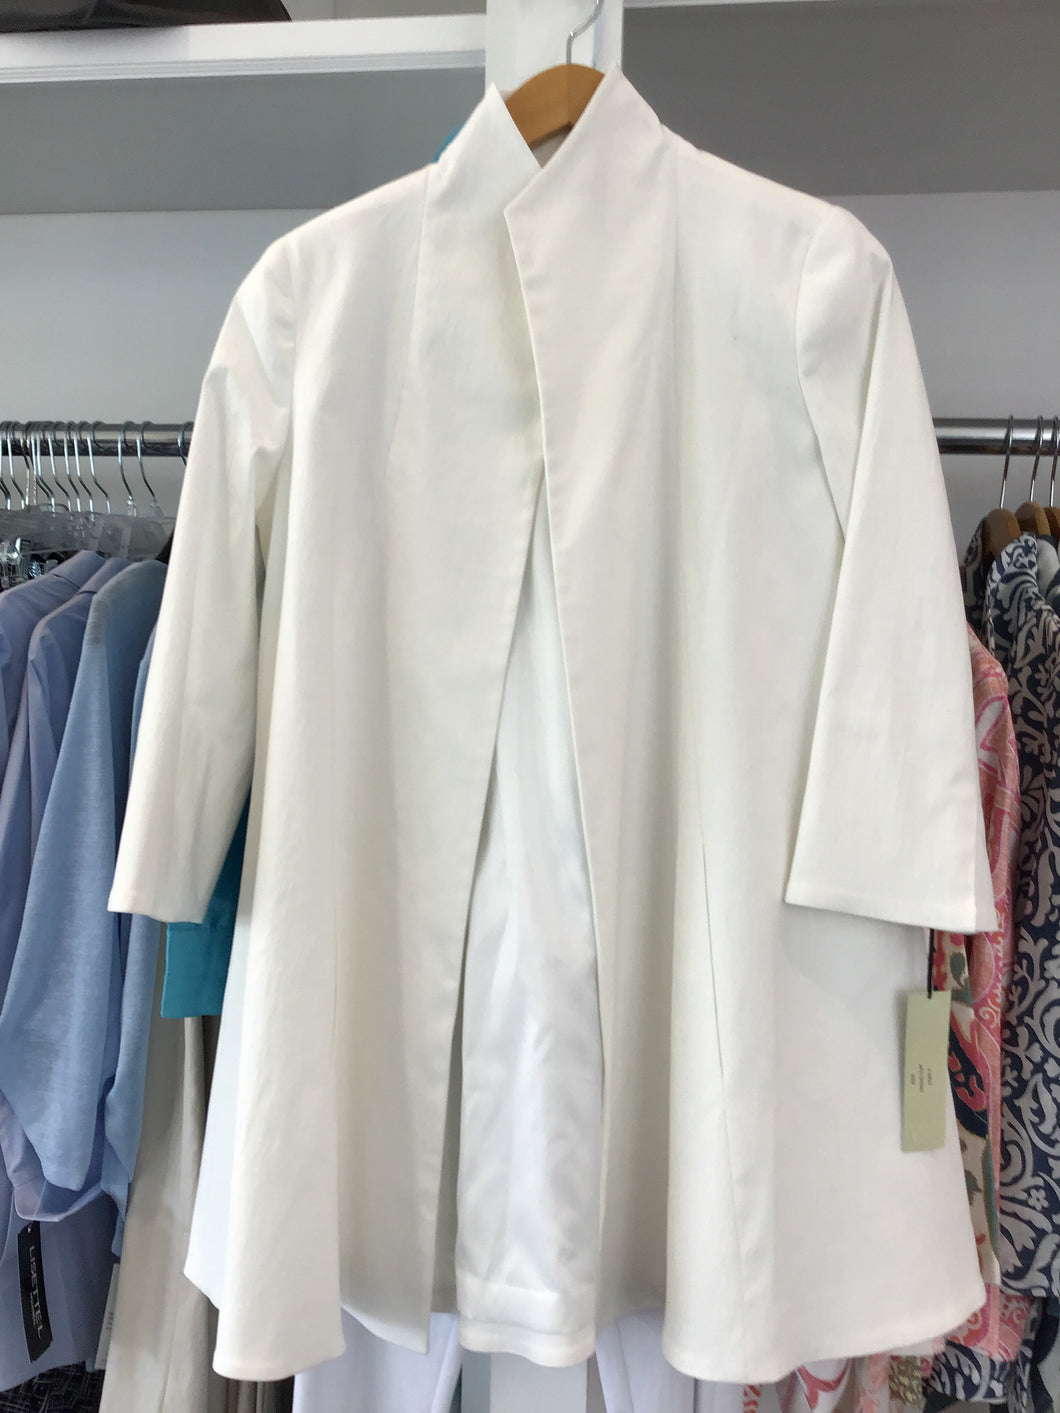 Swing coat in ivory by Estelle and Finn